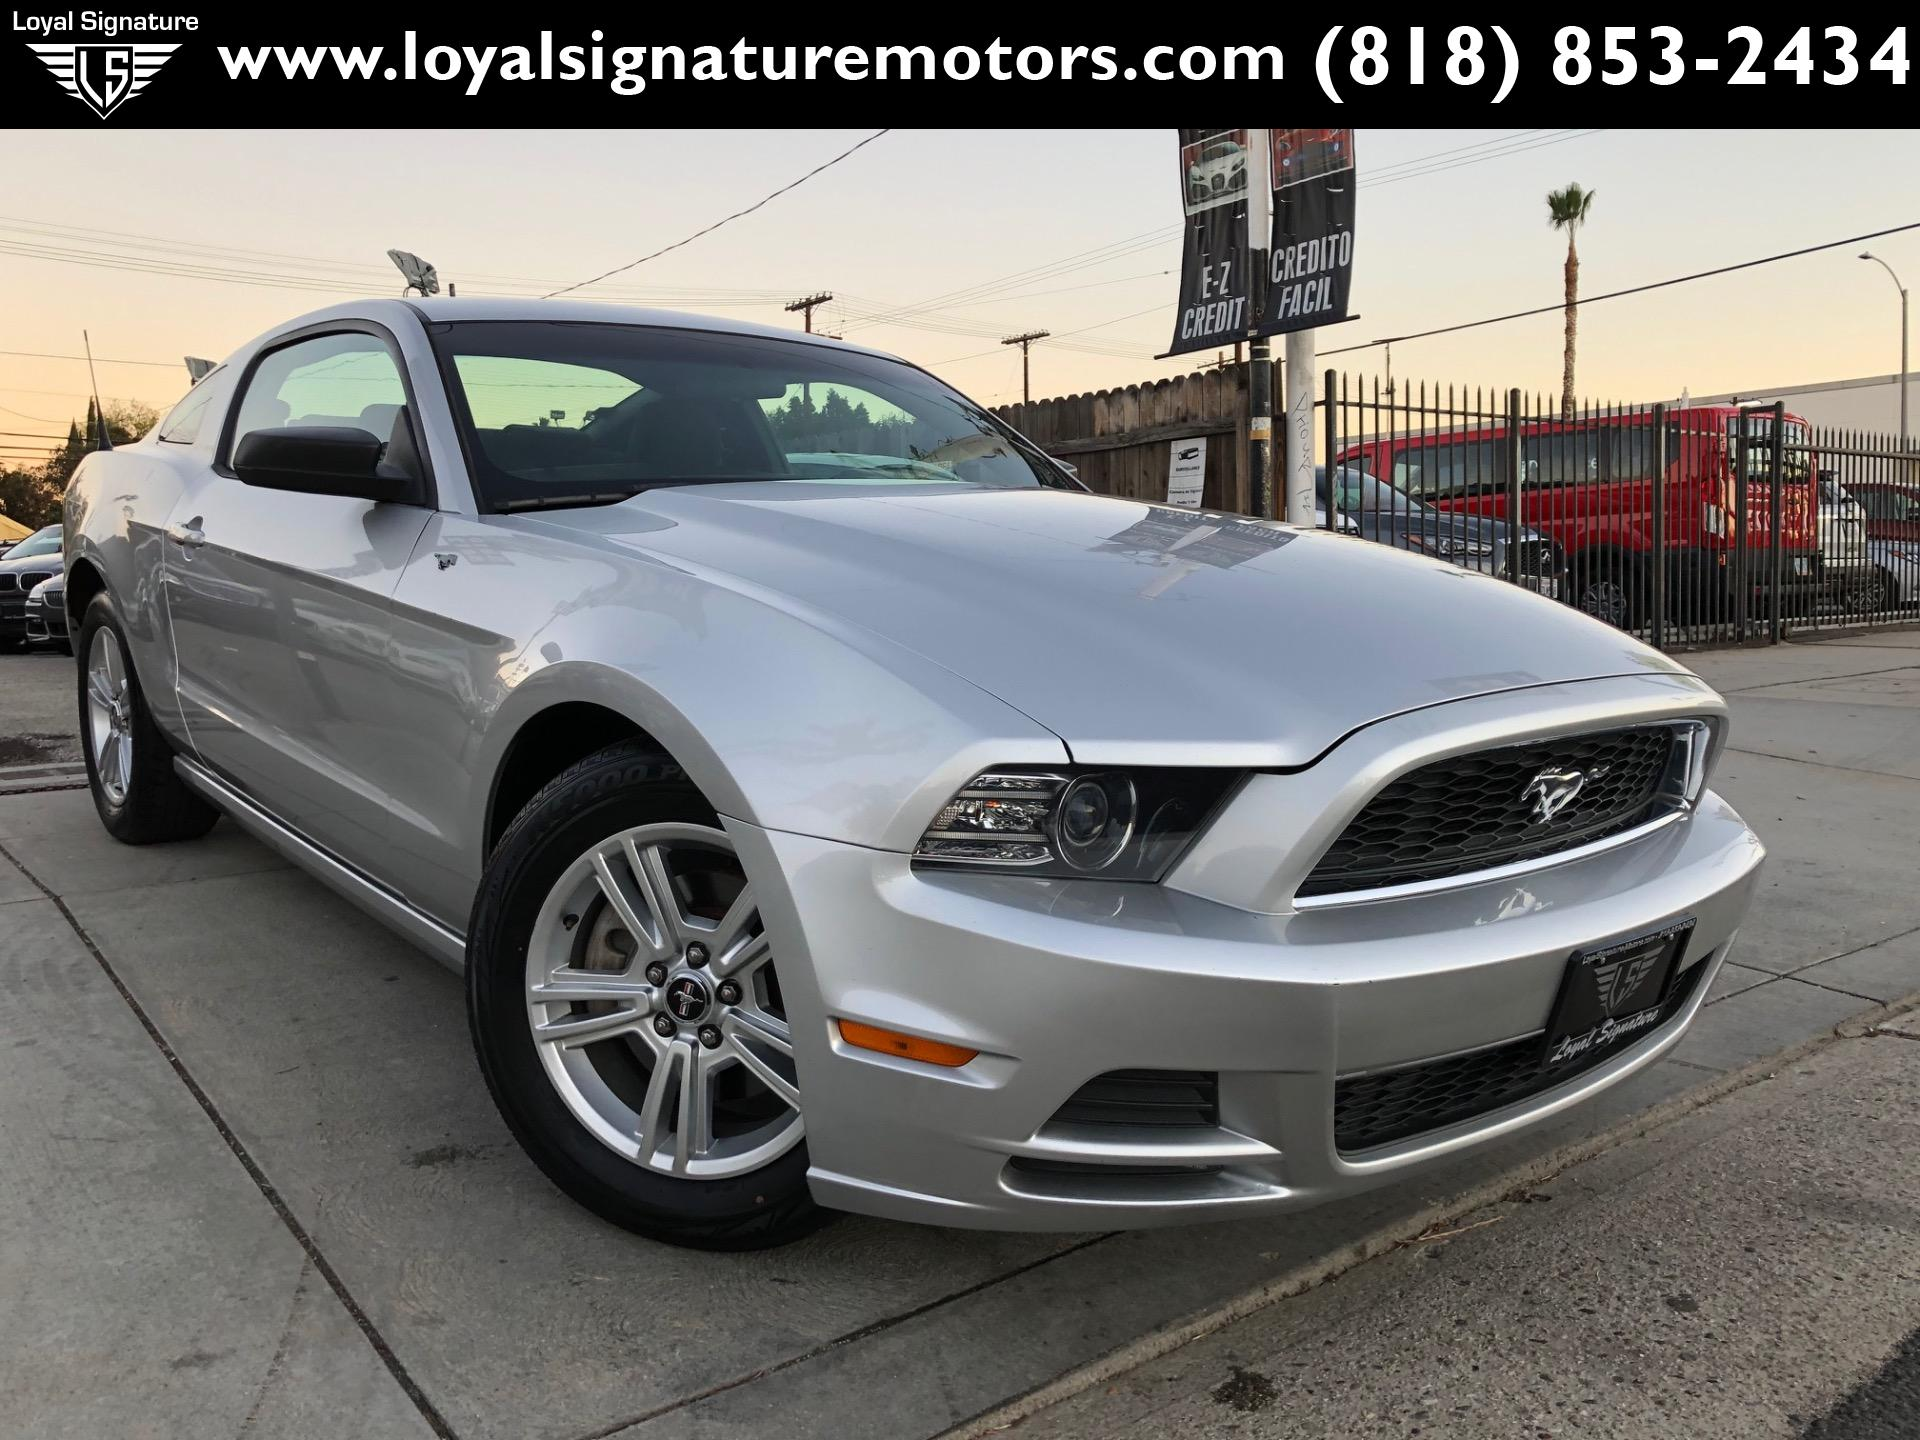 Used 2014 Ford Mustang V6 Premium For Sale 10 995 Loyal